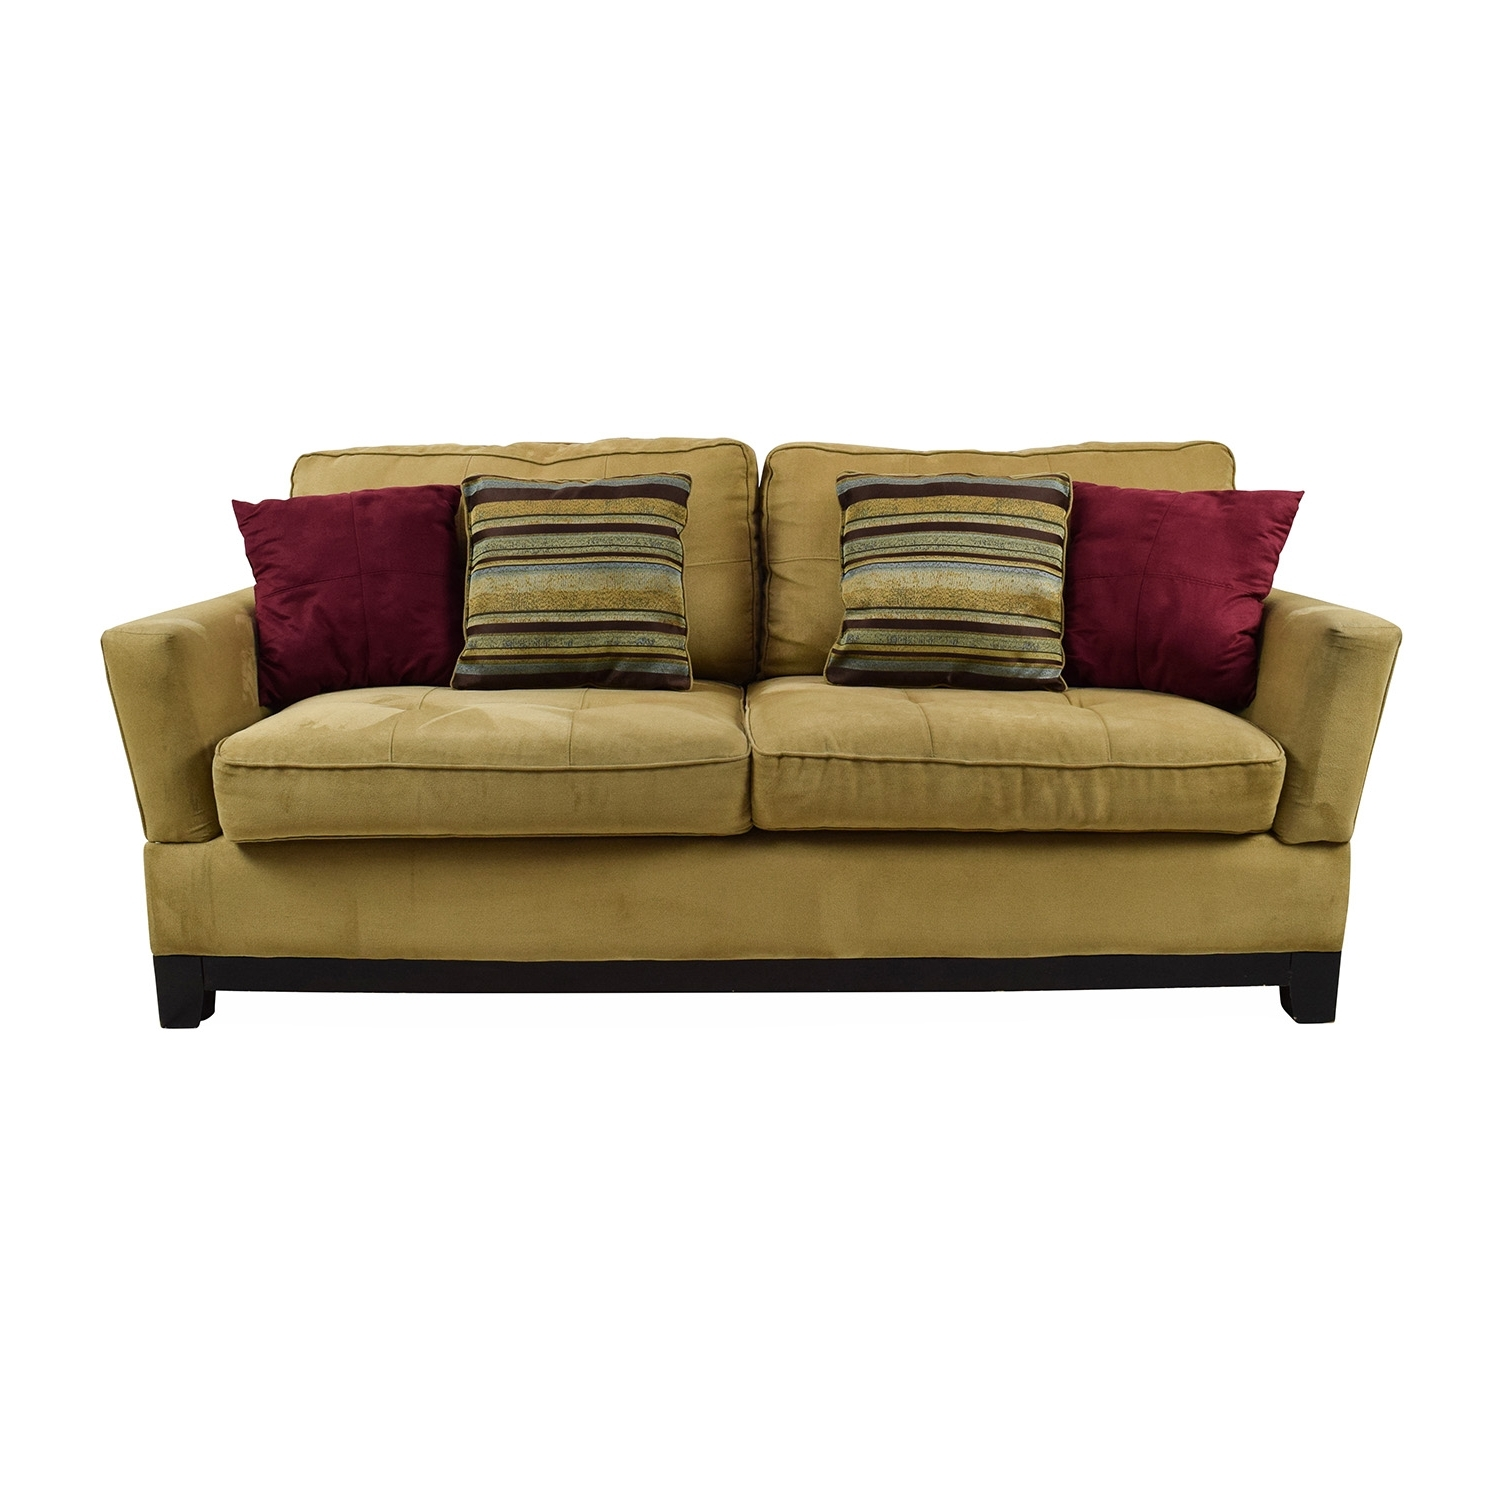 [%78% Off – Jennifer Convertibles Jennifer Convertibles Tan Sofa / Sofas Throughout Popular Jennifer Sofas|Jennifer Sofas Inside Most Recently Released 78% Off – Jennifer Convertibles Jennifer Convertibles Tan Sofa / Sofas|Famous Jennifer Sofas With 78% Off – Jennifer Convertibles Jennifer Convertibles Tan Sofa / Sofas|Trendy 78% Off – Jennifer Convertibles Jennifer Convertibles Tan Sofa / Sofas Intended For Jennifer Sofas%] (View 4 of 15)